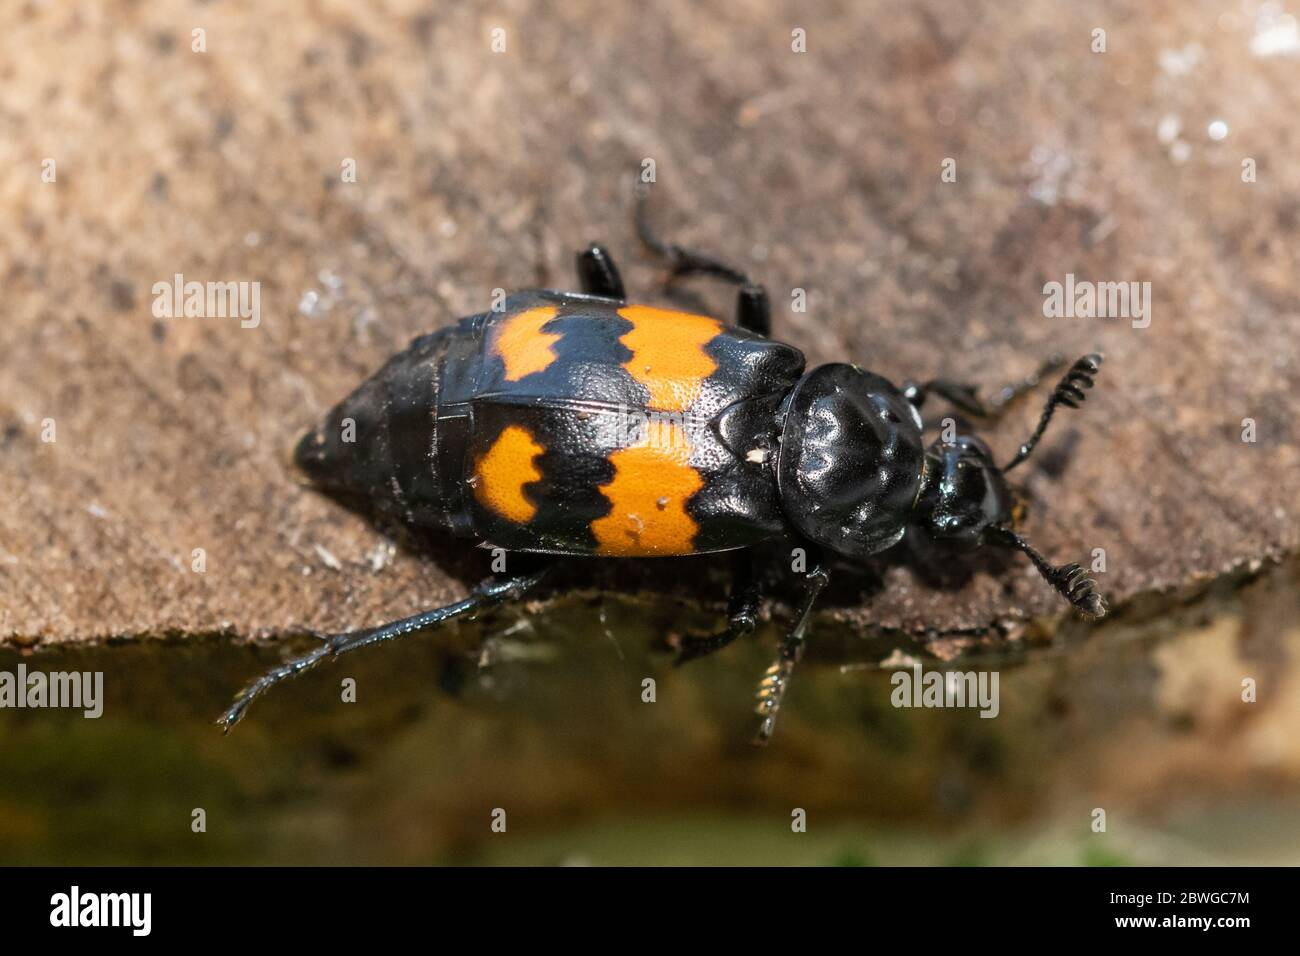 common-sexton-beetle-nicrophorus-vespilloides-also-called-burying-beetle-uk-2BWGC7M.jpg